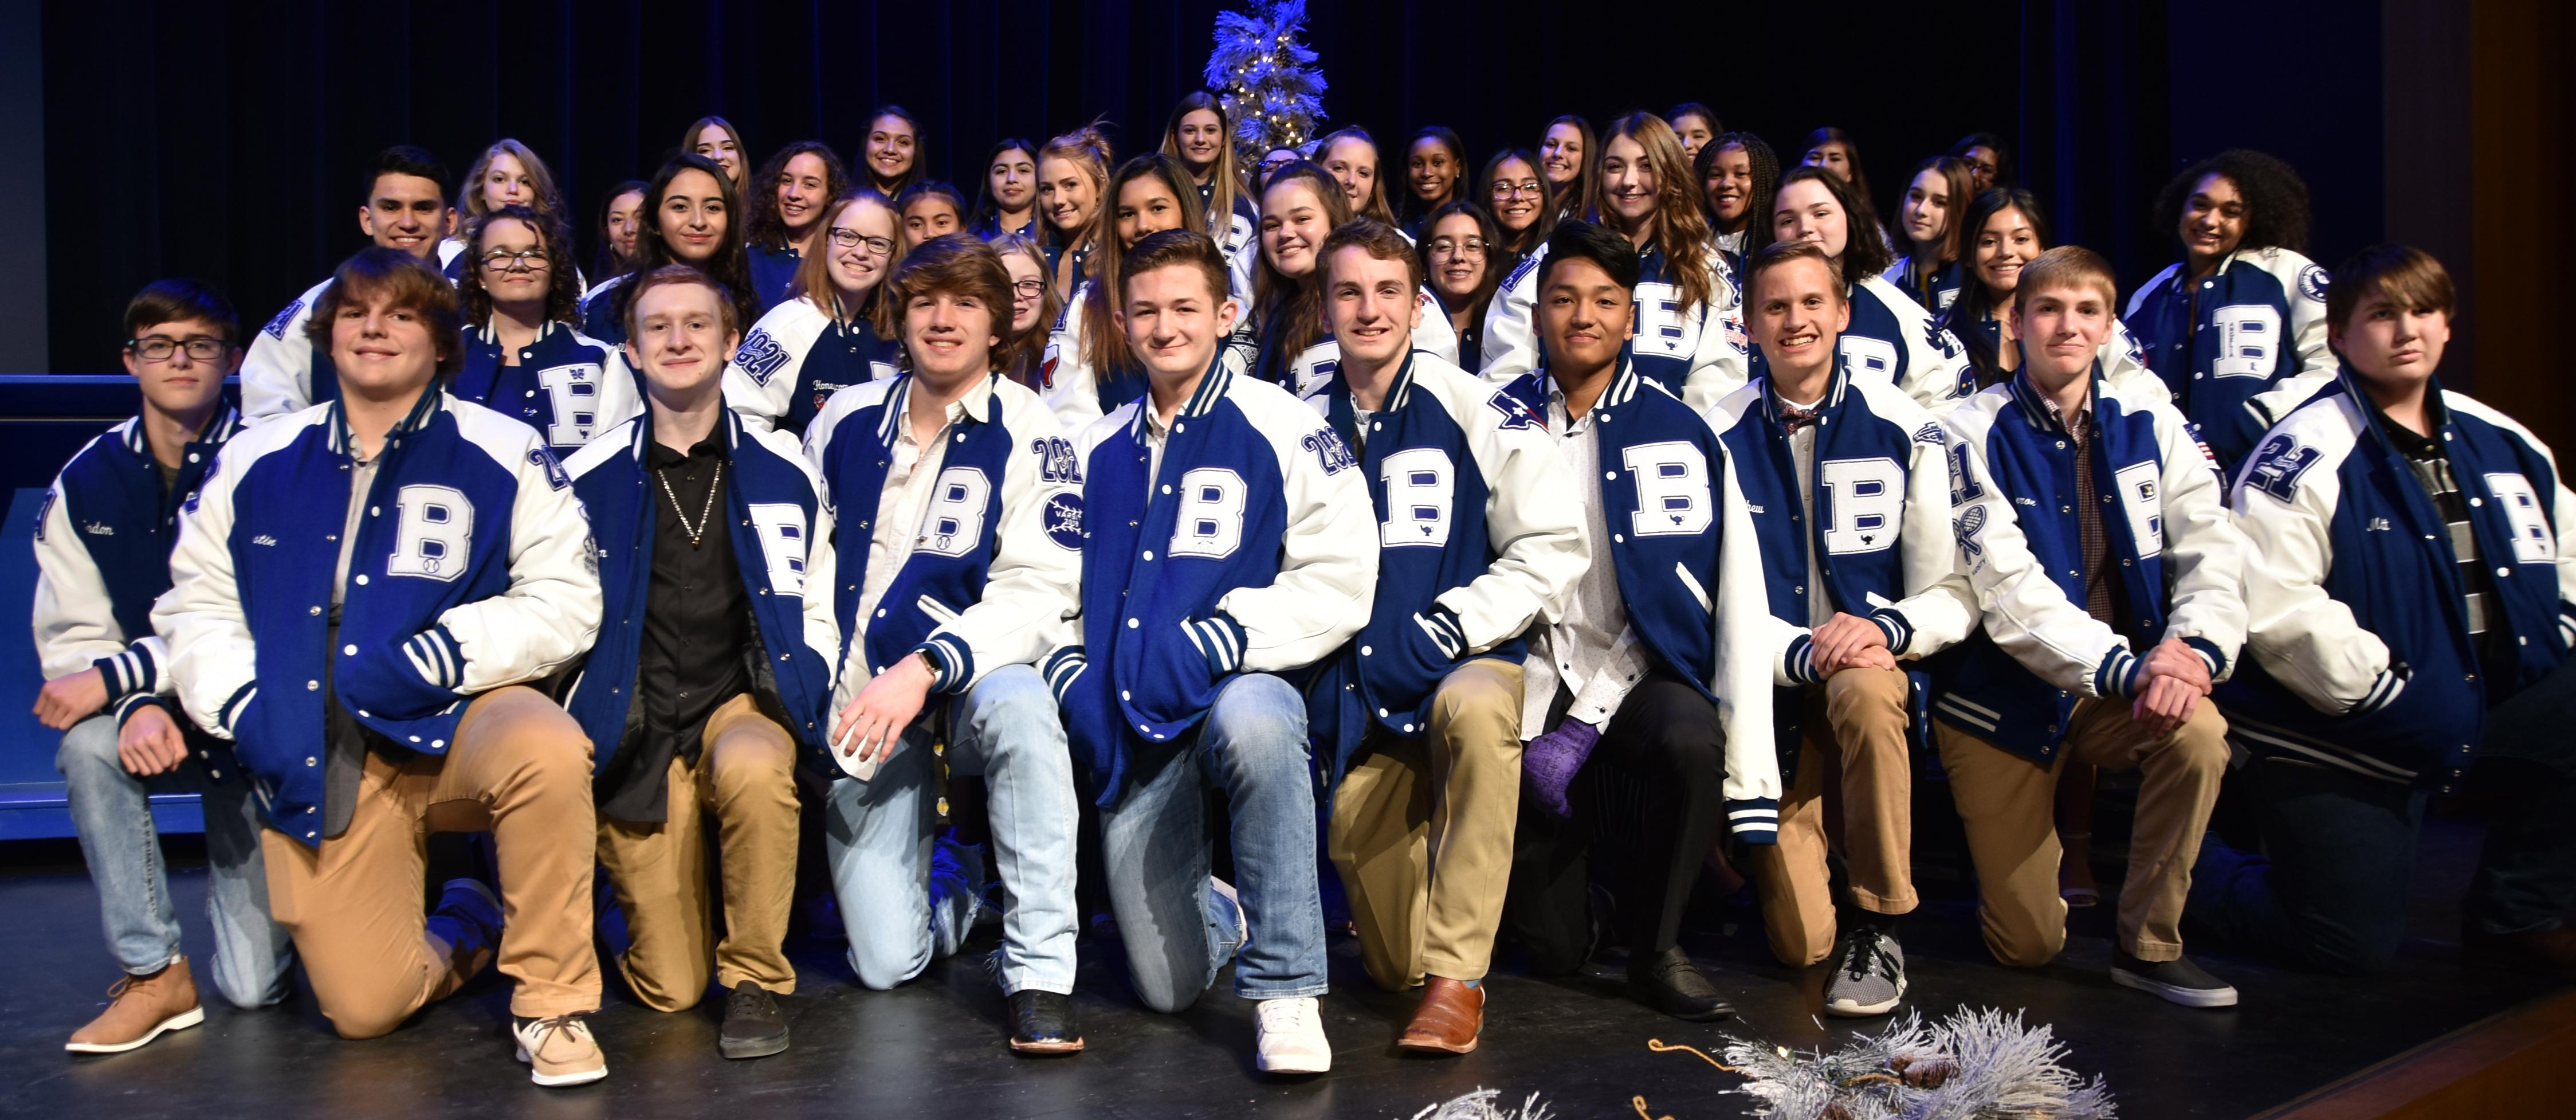 Brewer High School honored 10th through 12th graders who achieved a top 10 percent ranking for the 2017-18 school year during the Academic Letter Jacket Ceremony on Dec. 10.  - Sophomores